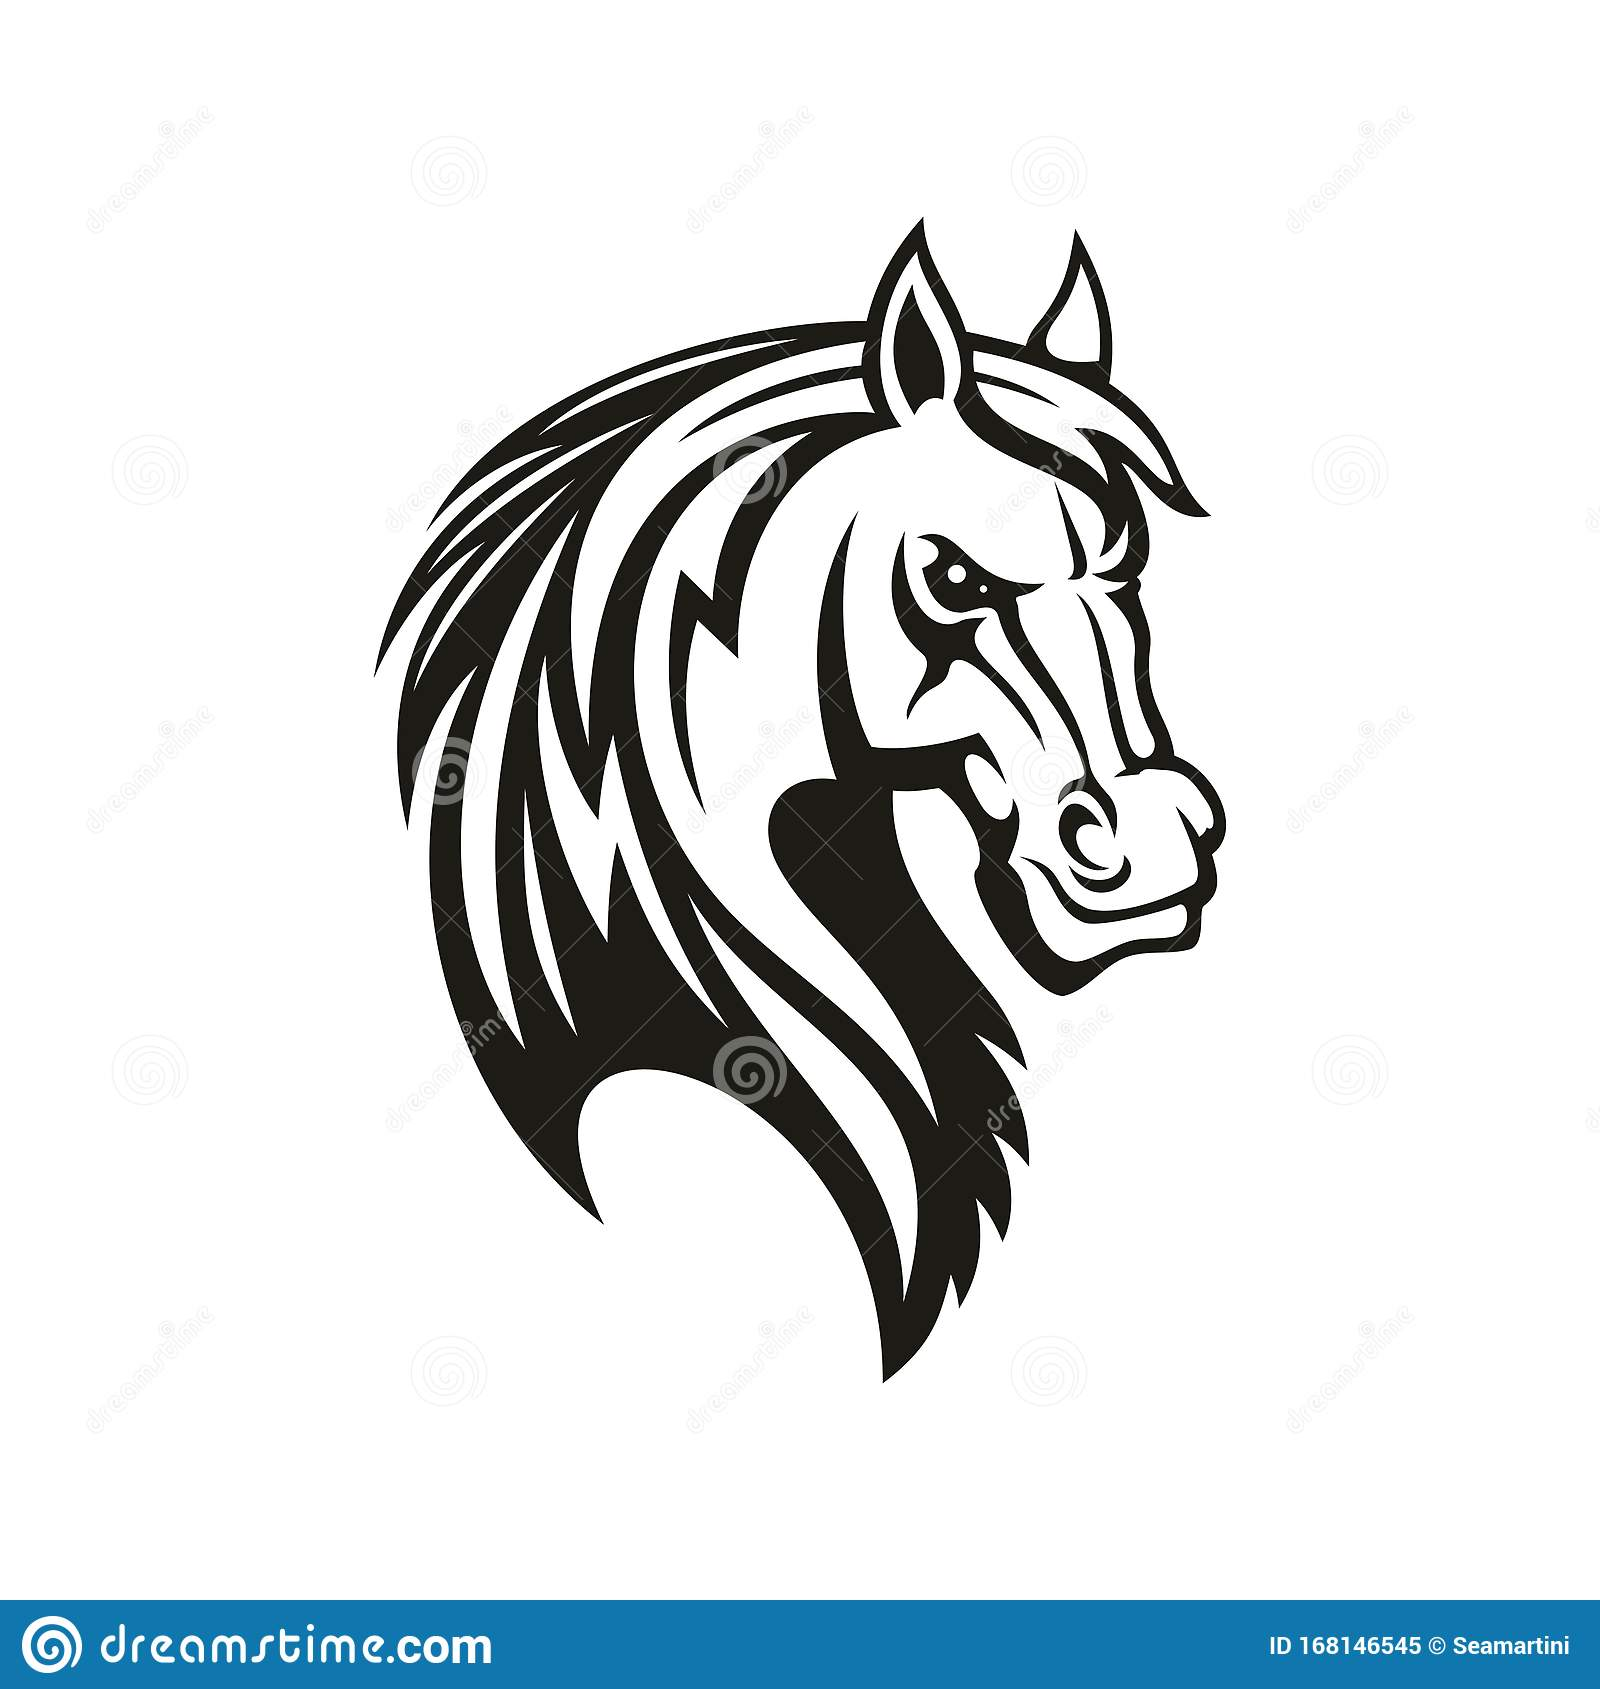 Horse Animal Tribal Tattoo Or Racing Sport Mascot Stock Vector Illustration Of Emblem Mane 168146545